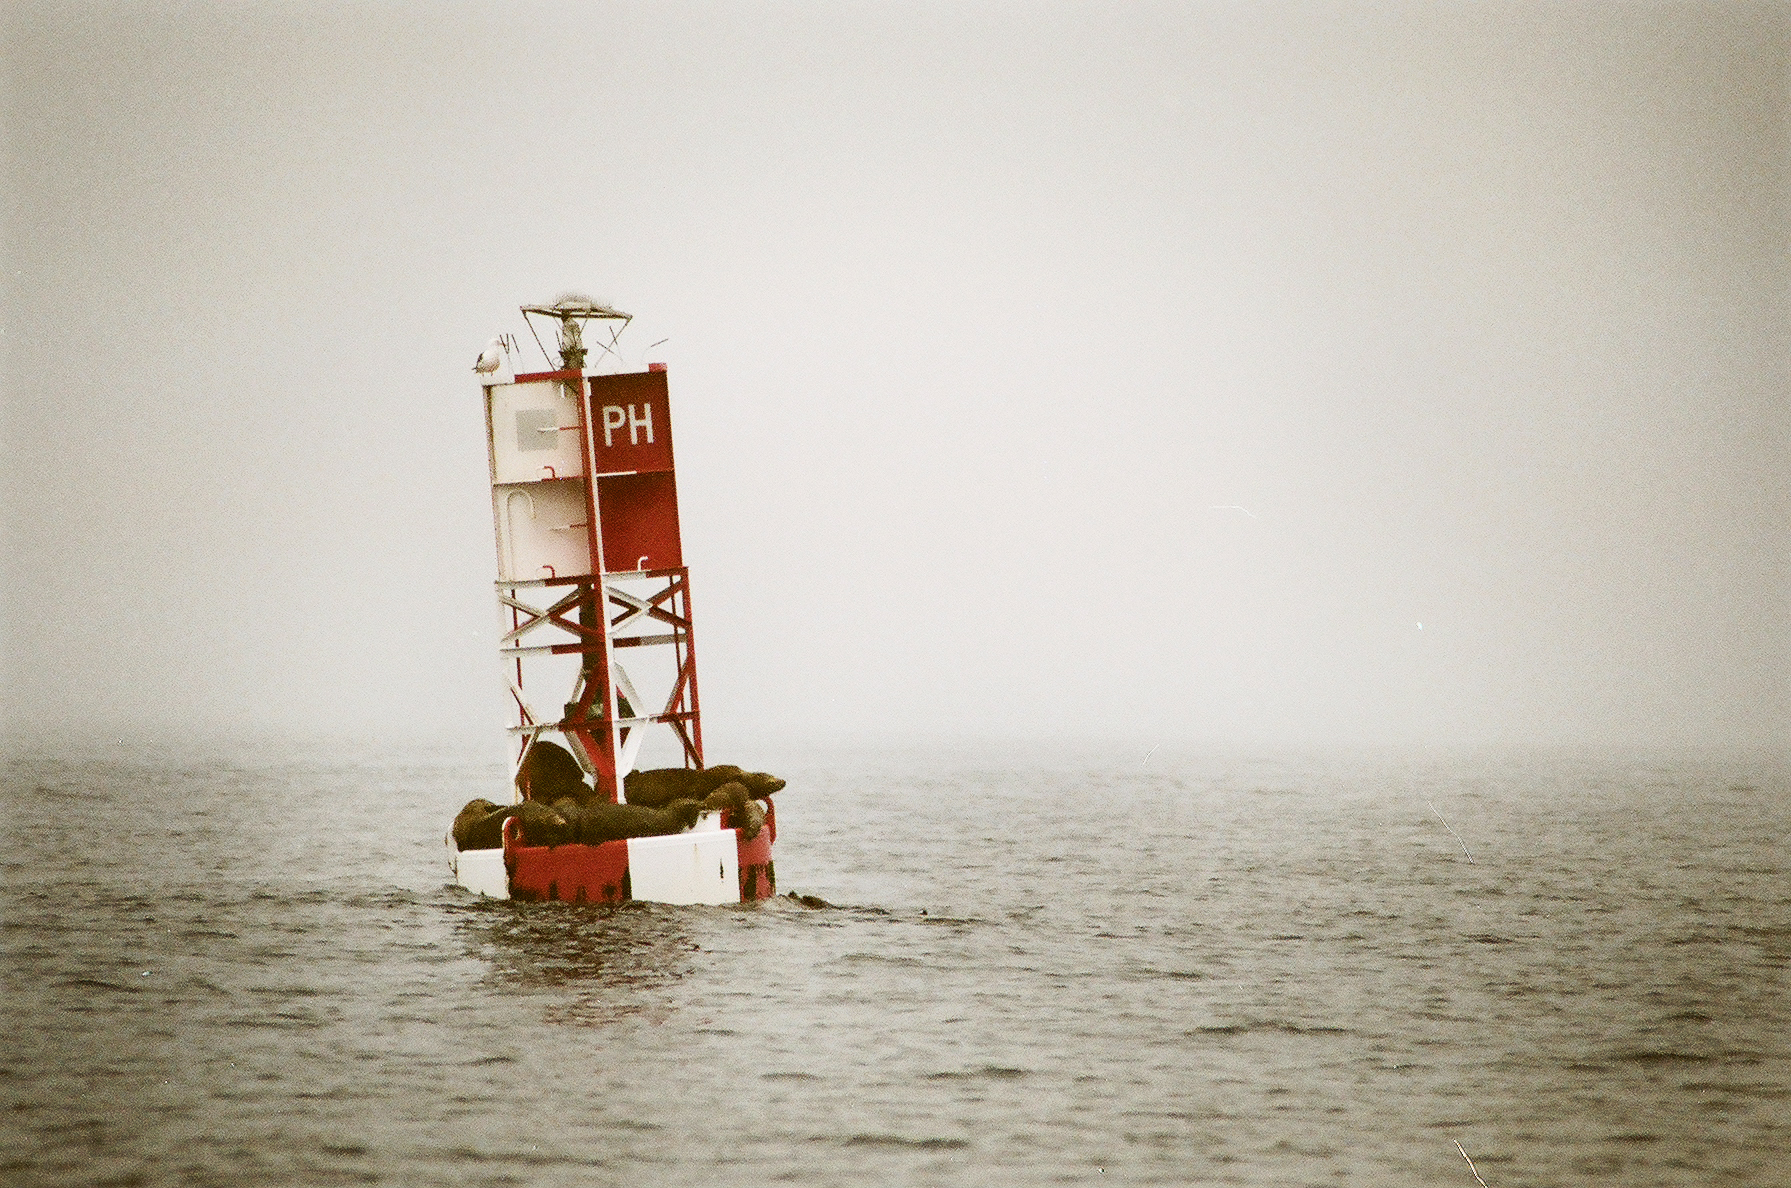 Sea Lions on a Buoy, Ventura, CA